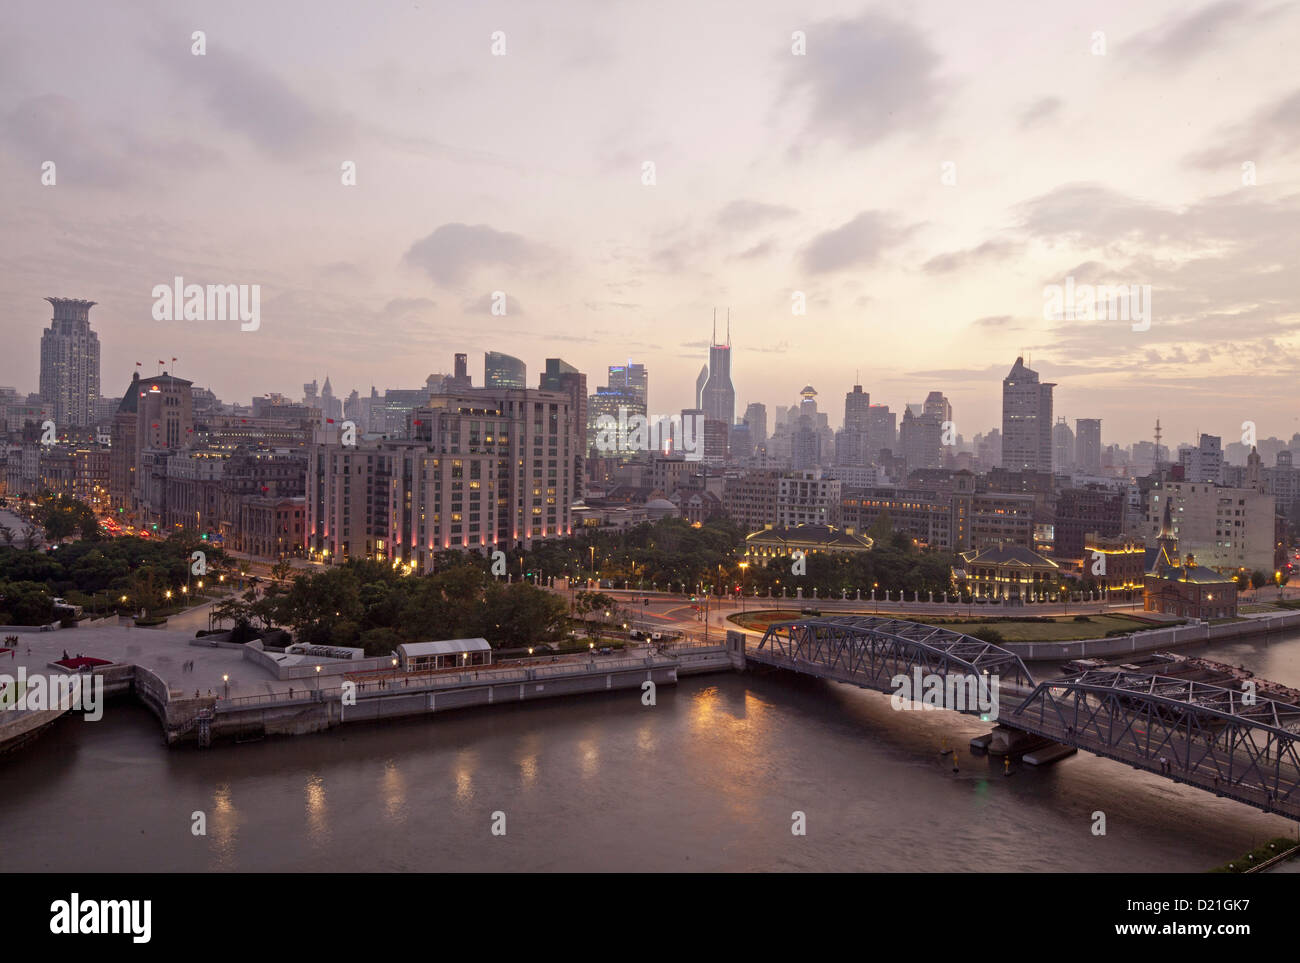 View of Waibaidu Bridge over the Huagpu River and houses of Bund in the evening, Shanghai, China, Asia Stock Photo